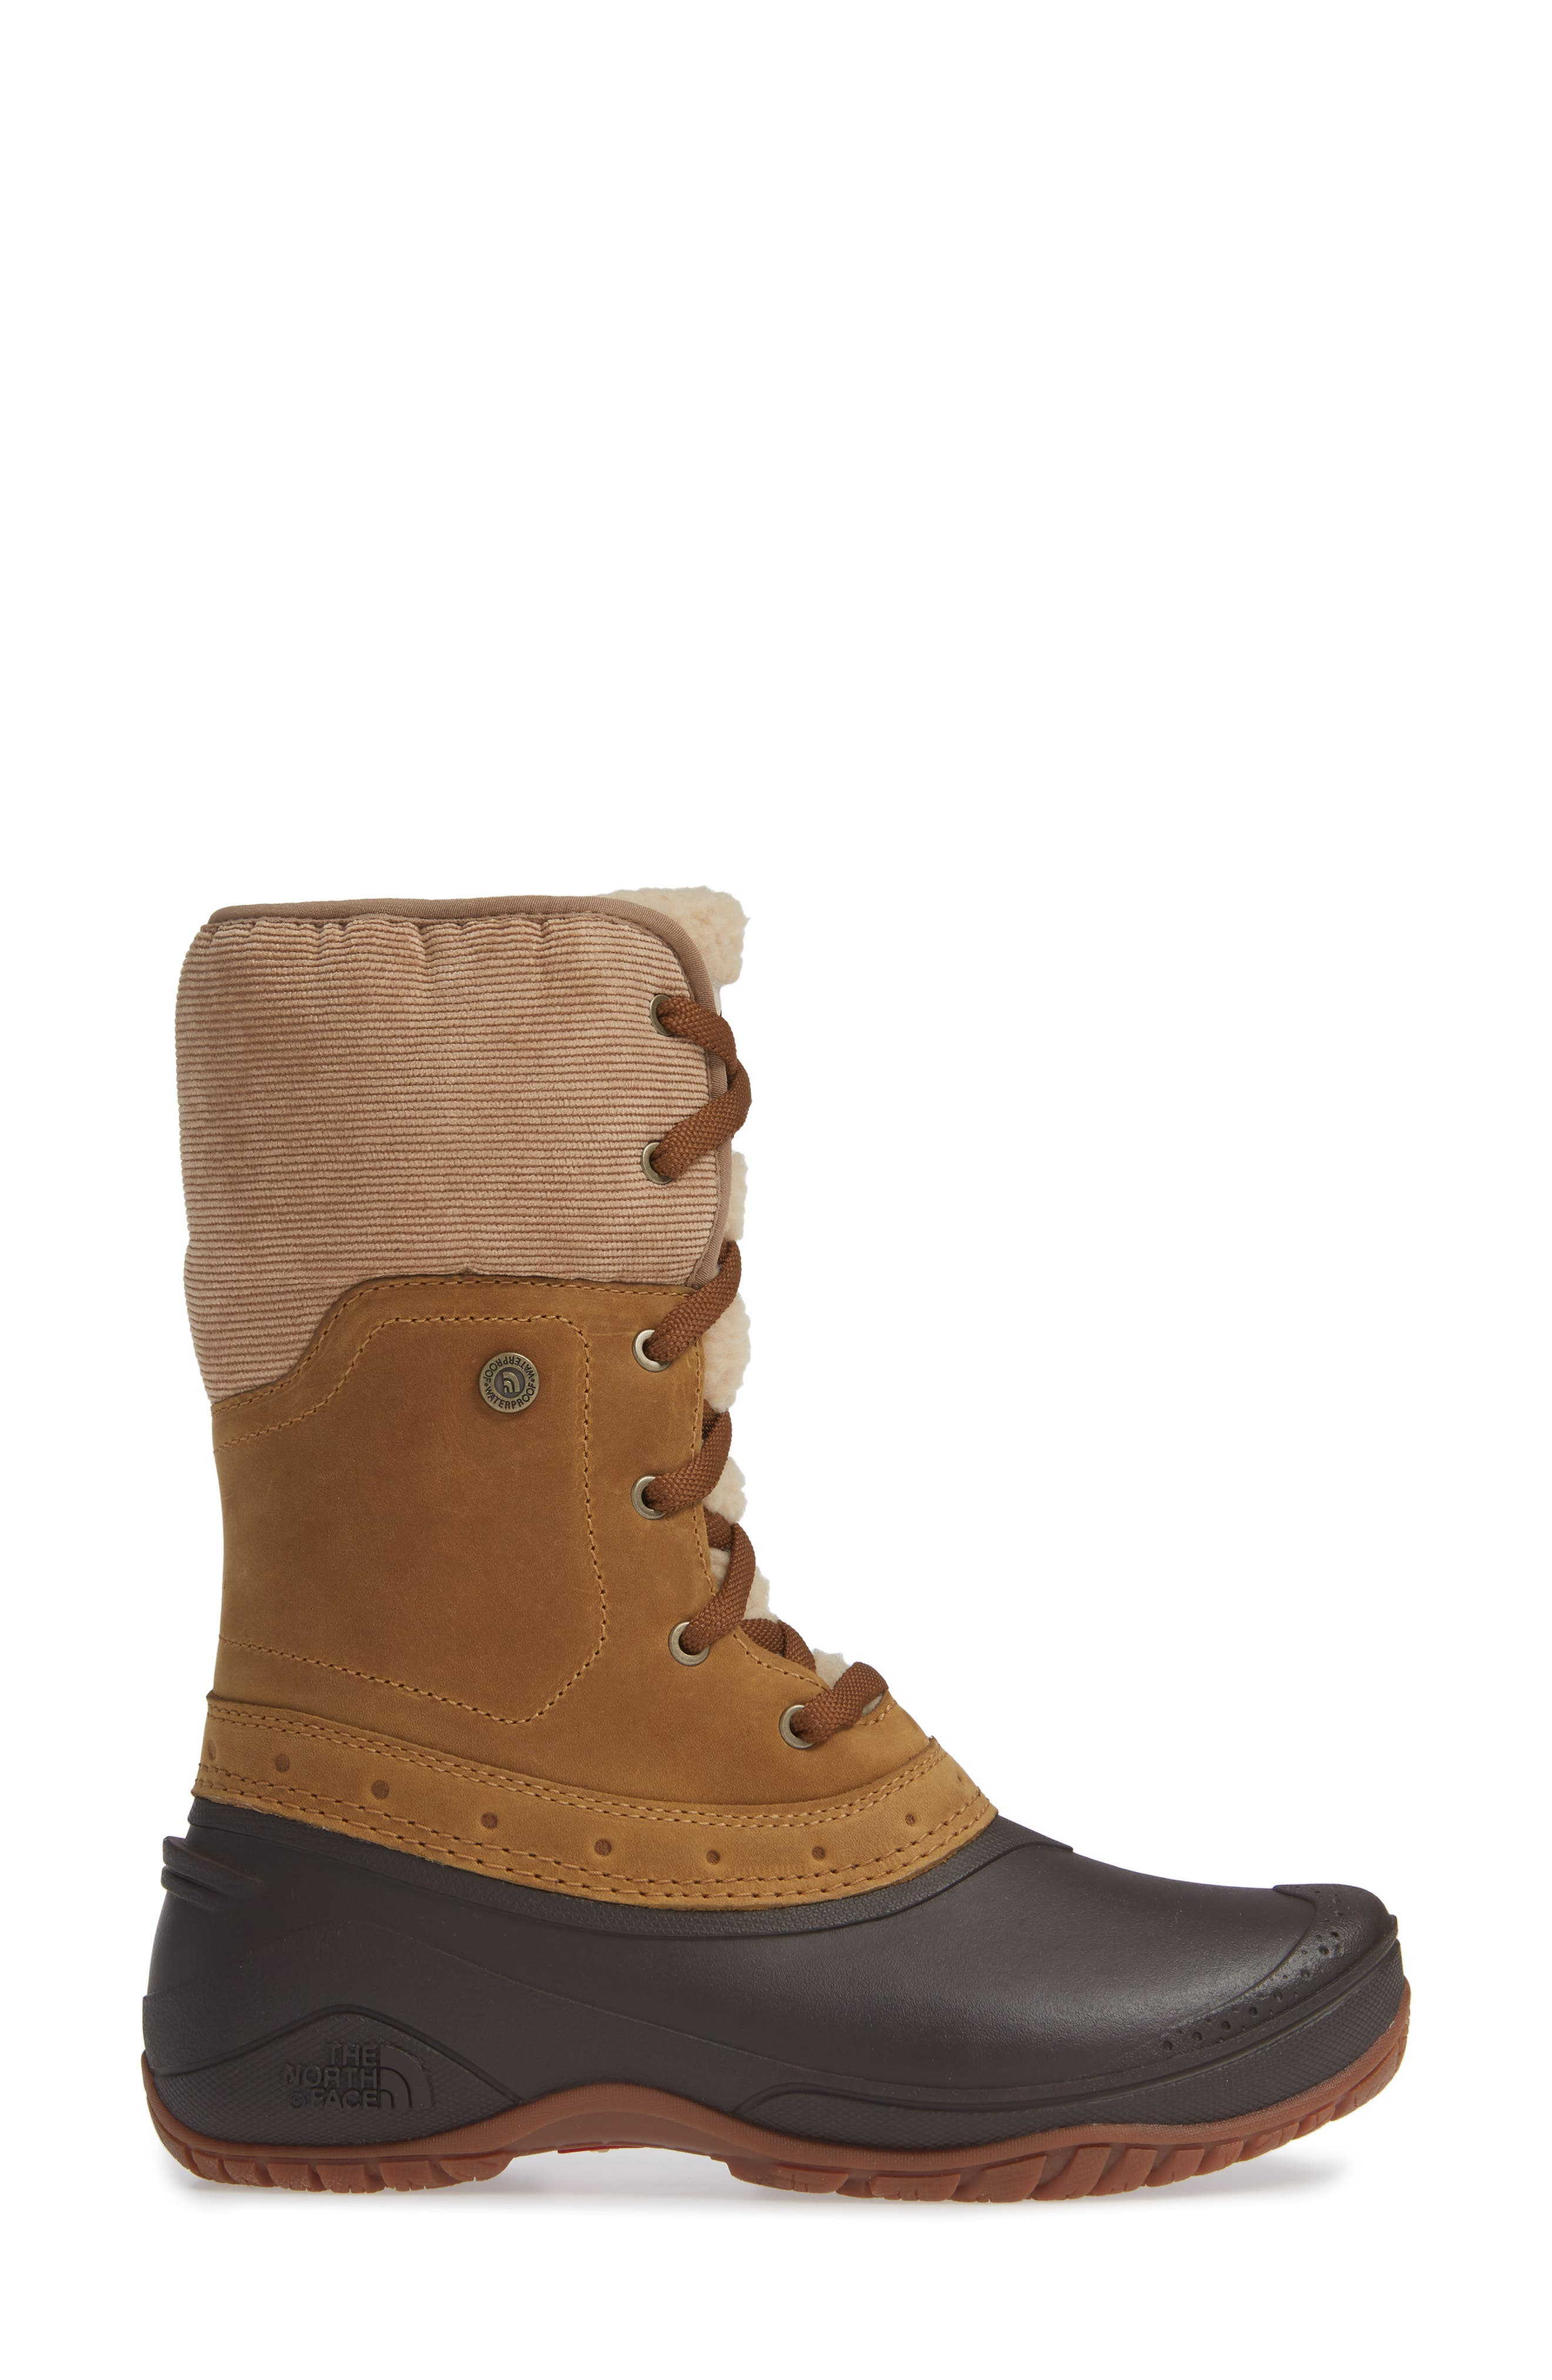 Shellista Roll Cuff Waterproof Insulated Winter Boot,                             Alternate thumbnail 3, color,                             GOLDEN BROWN/ COFFEE BROWN